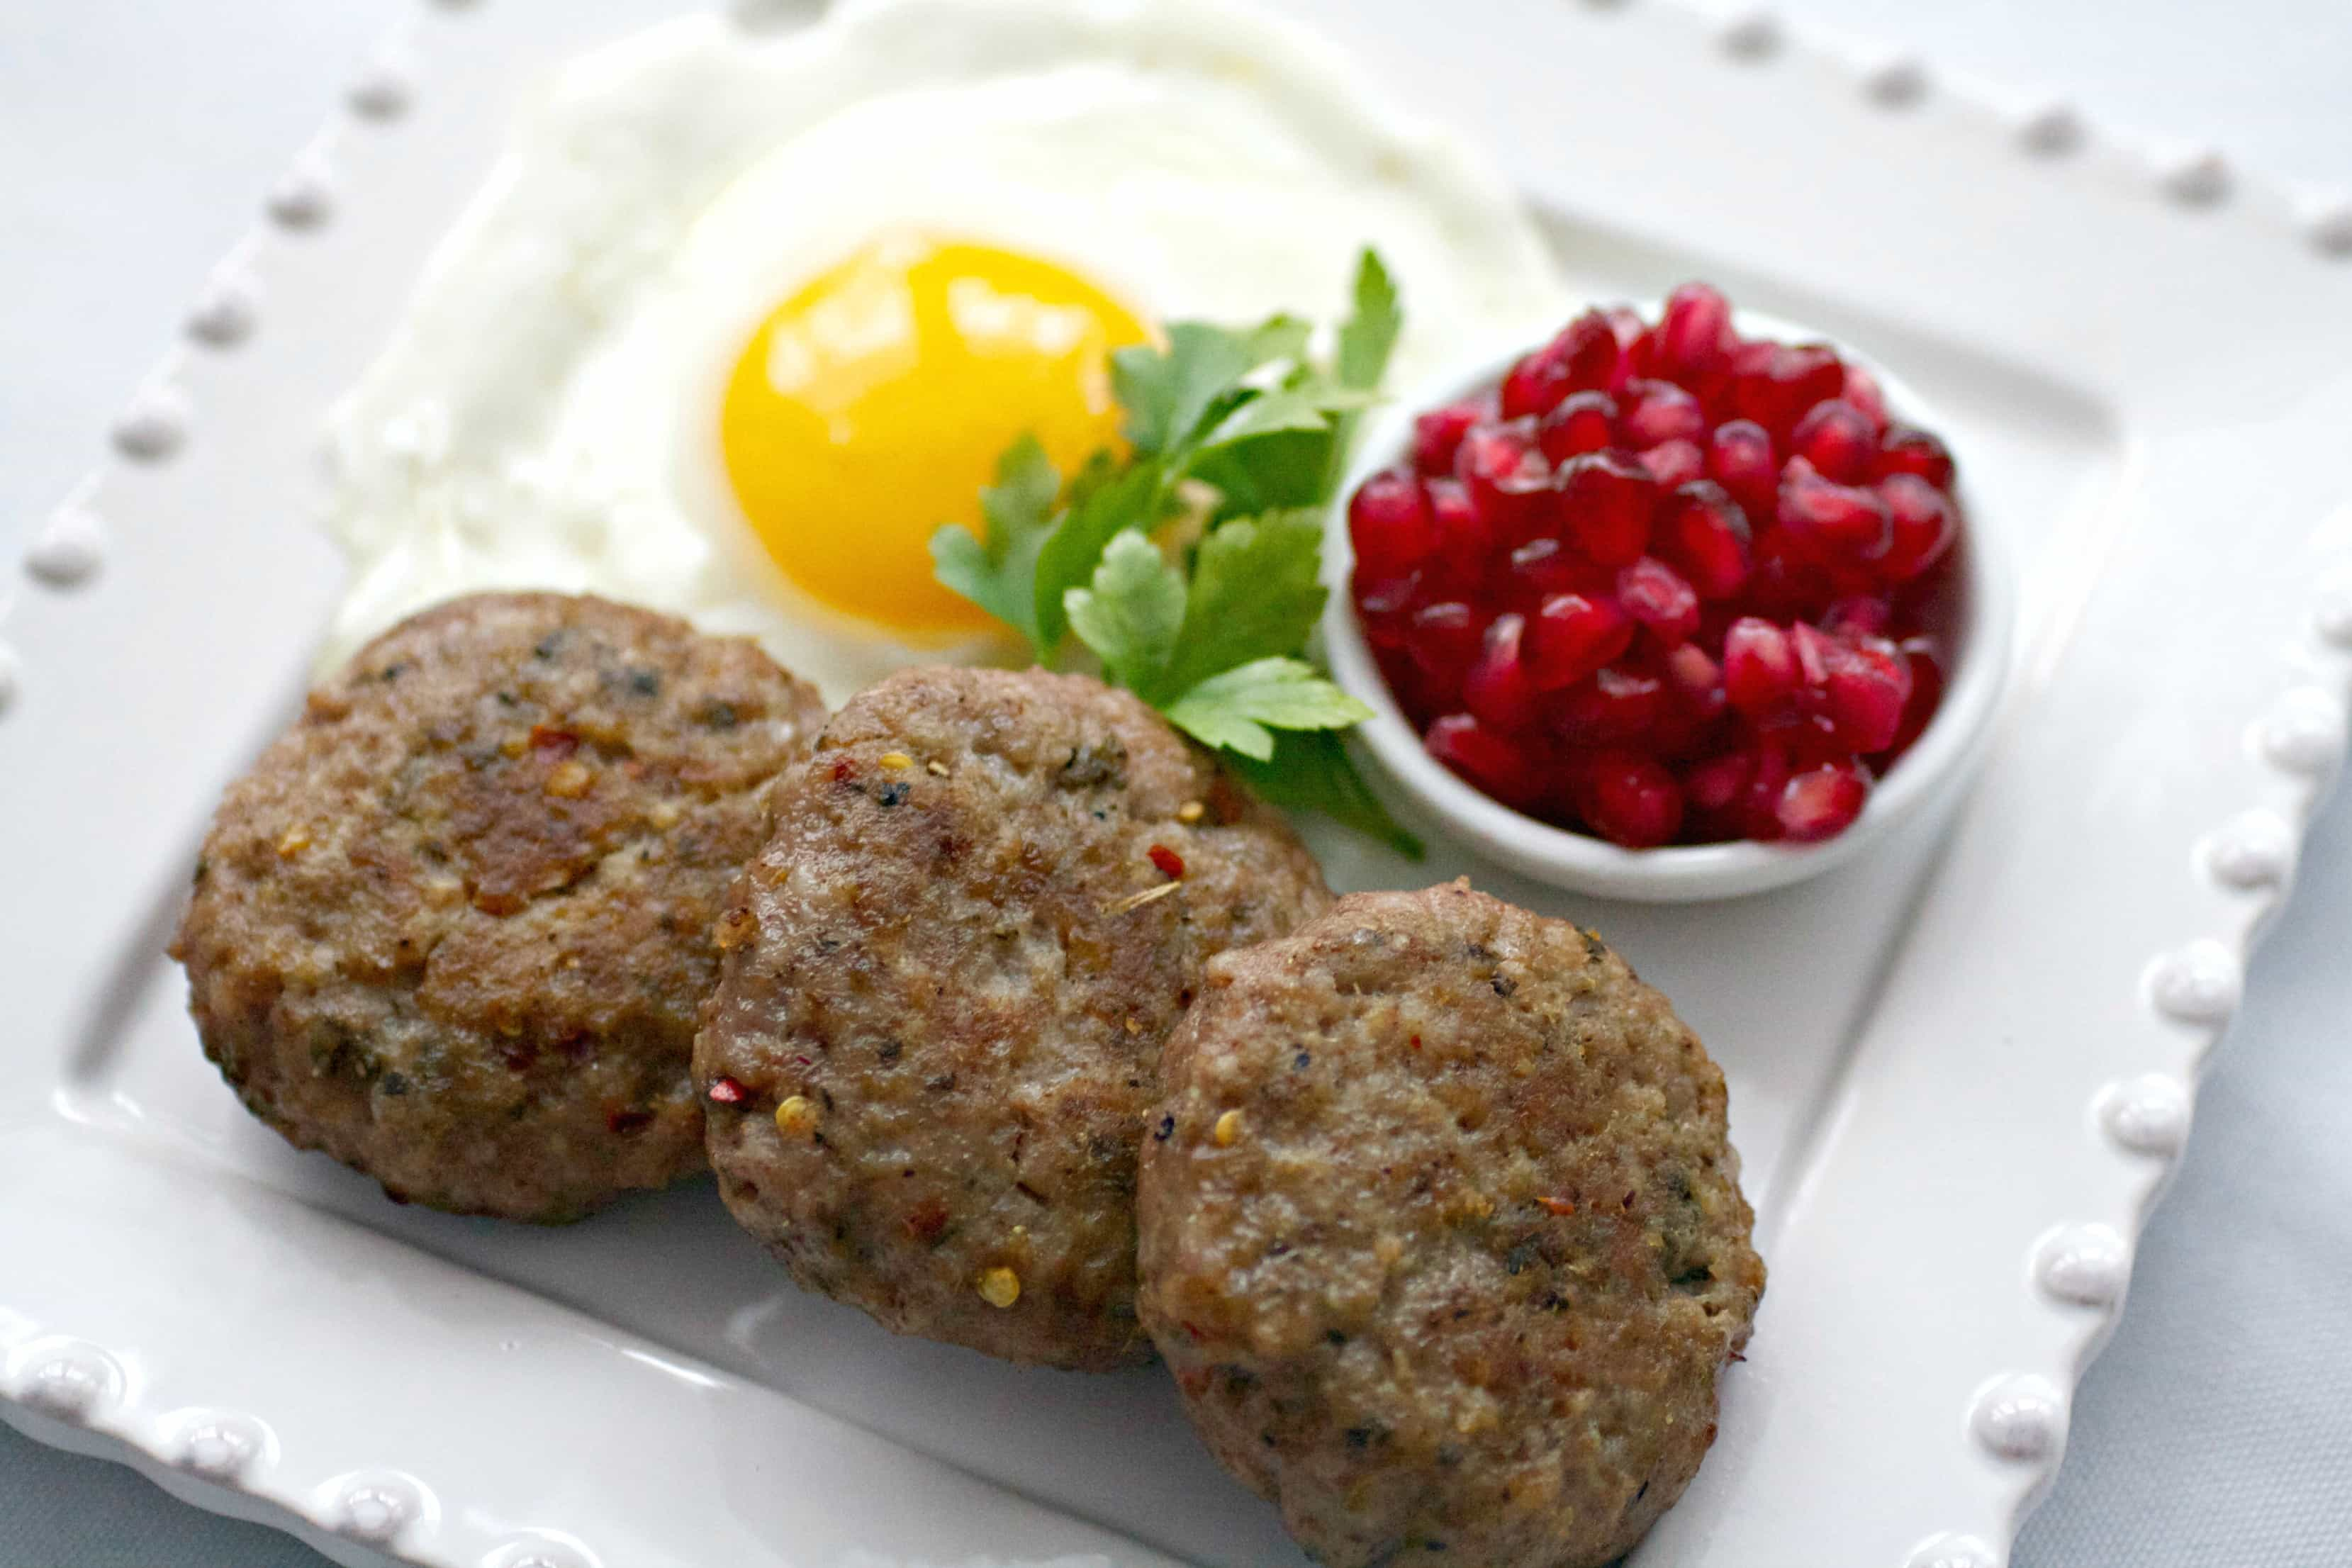 Three cooked breakfast sausage patties on a white square plate with a sunny side up egg and fruit